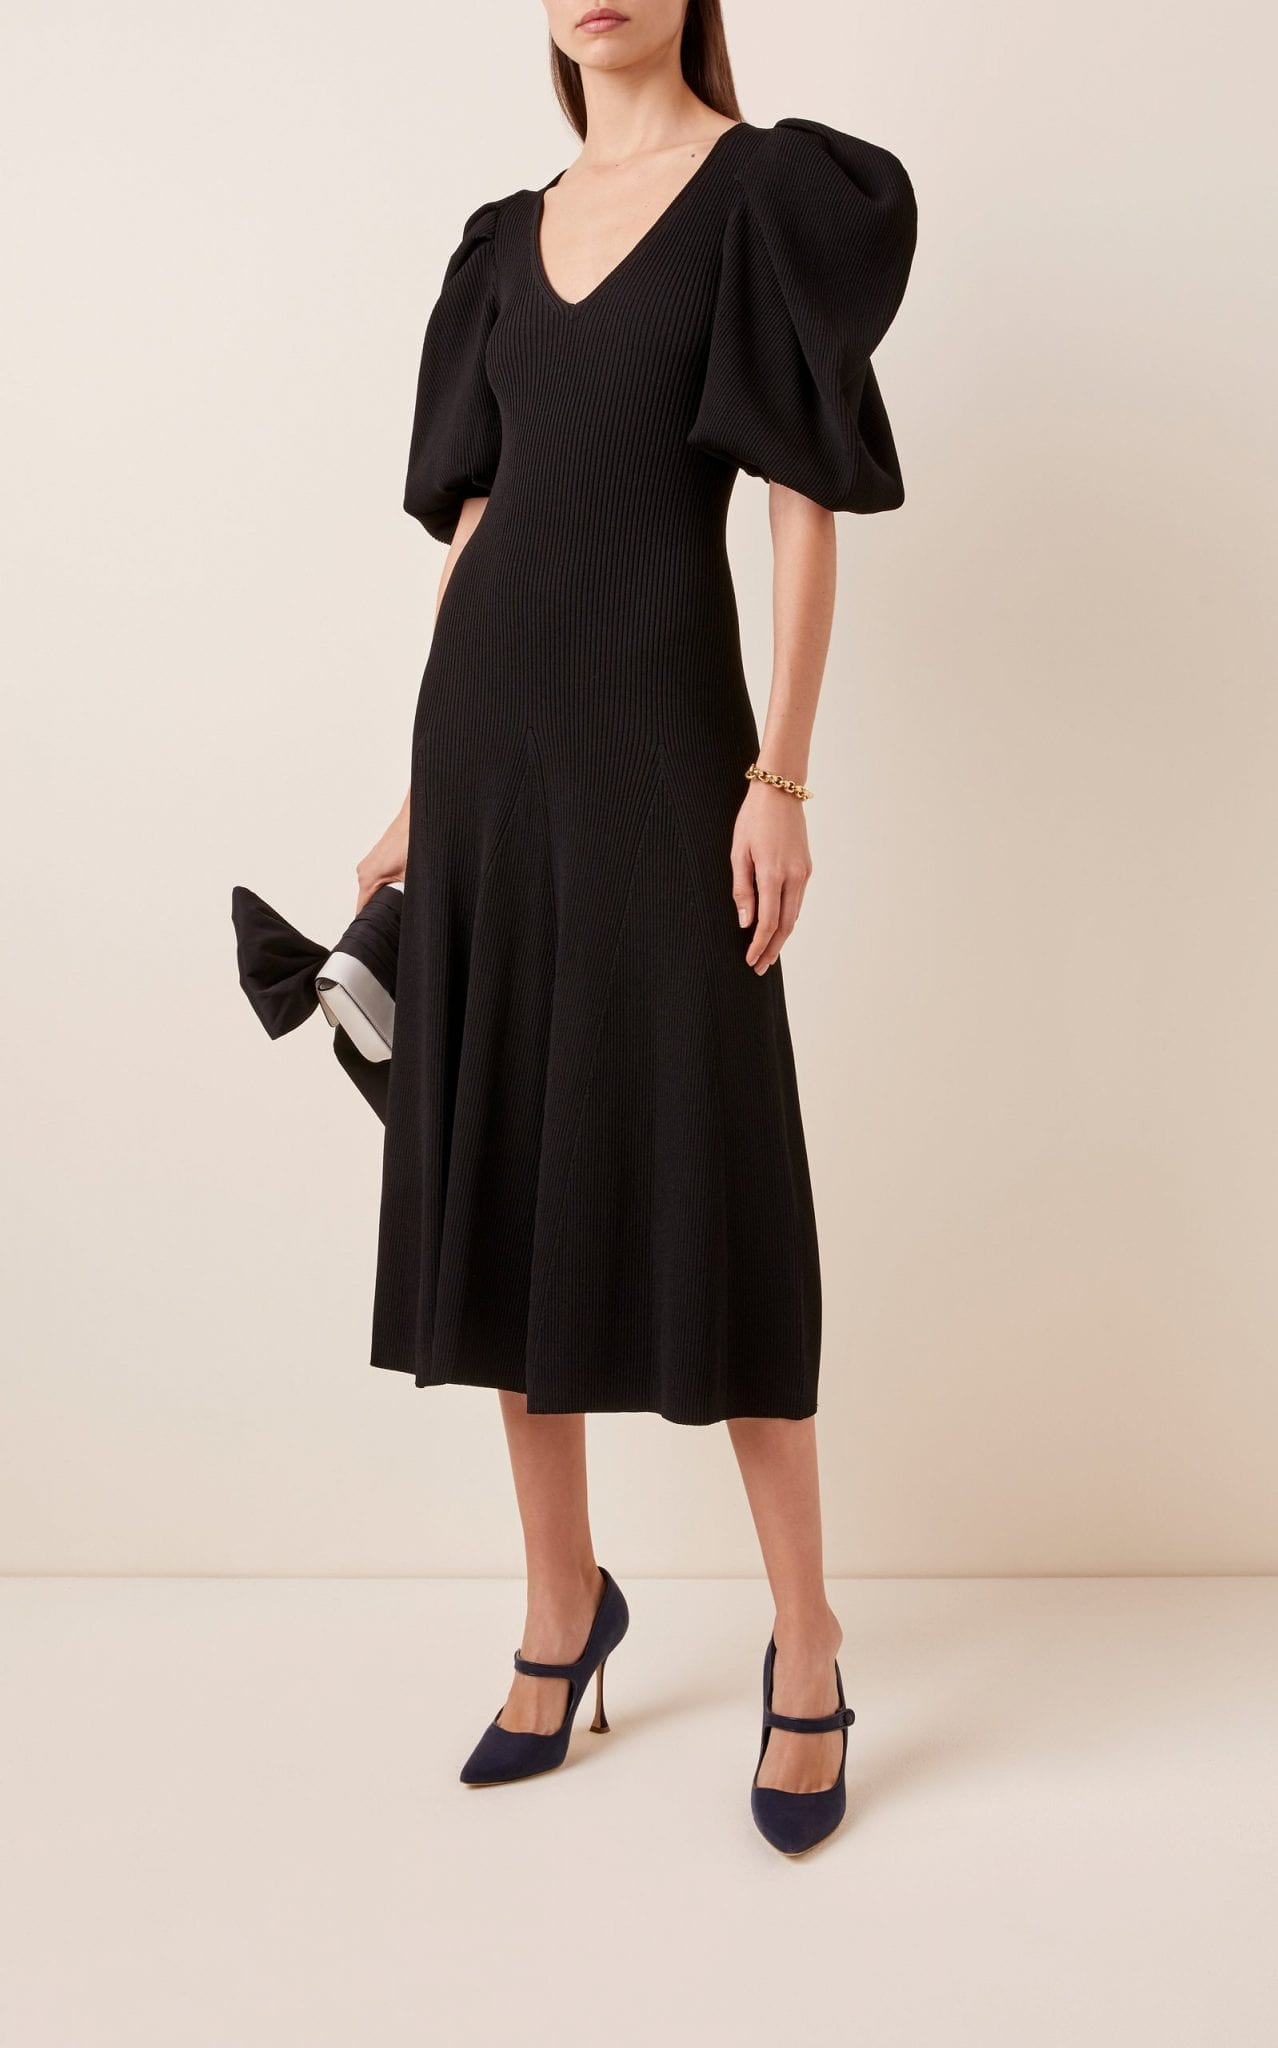 CAROLINA HERRERA Puffed-Sleeve Ribbed-Knit Midi Dress